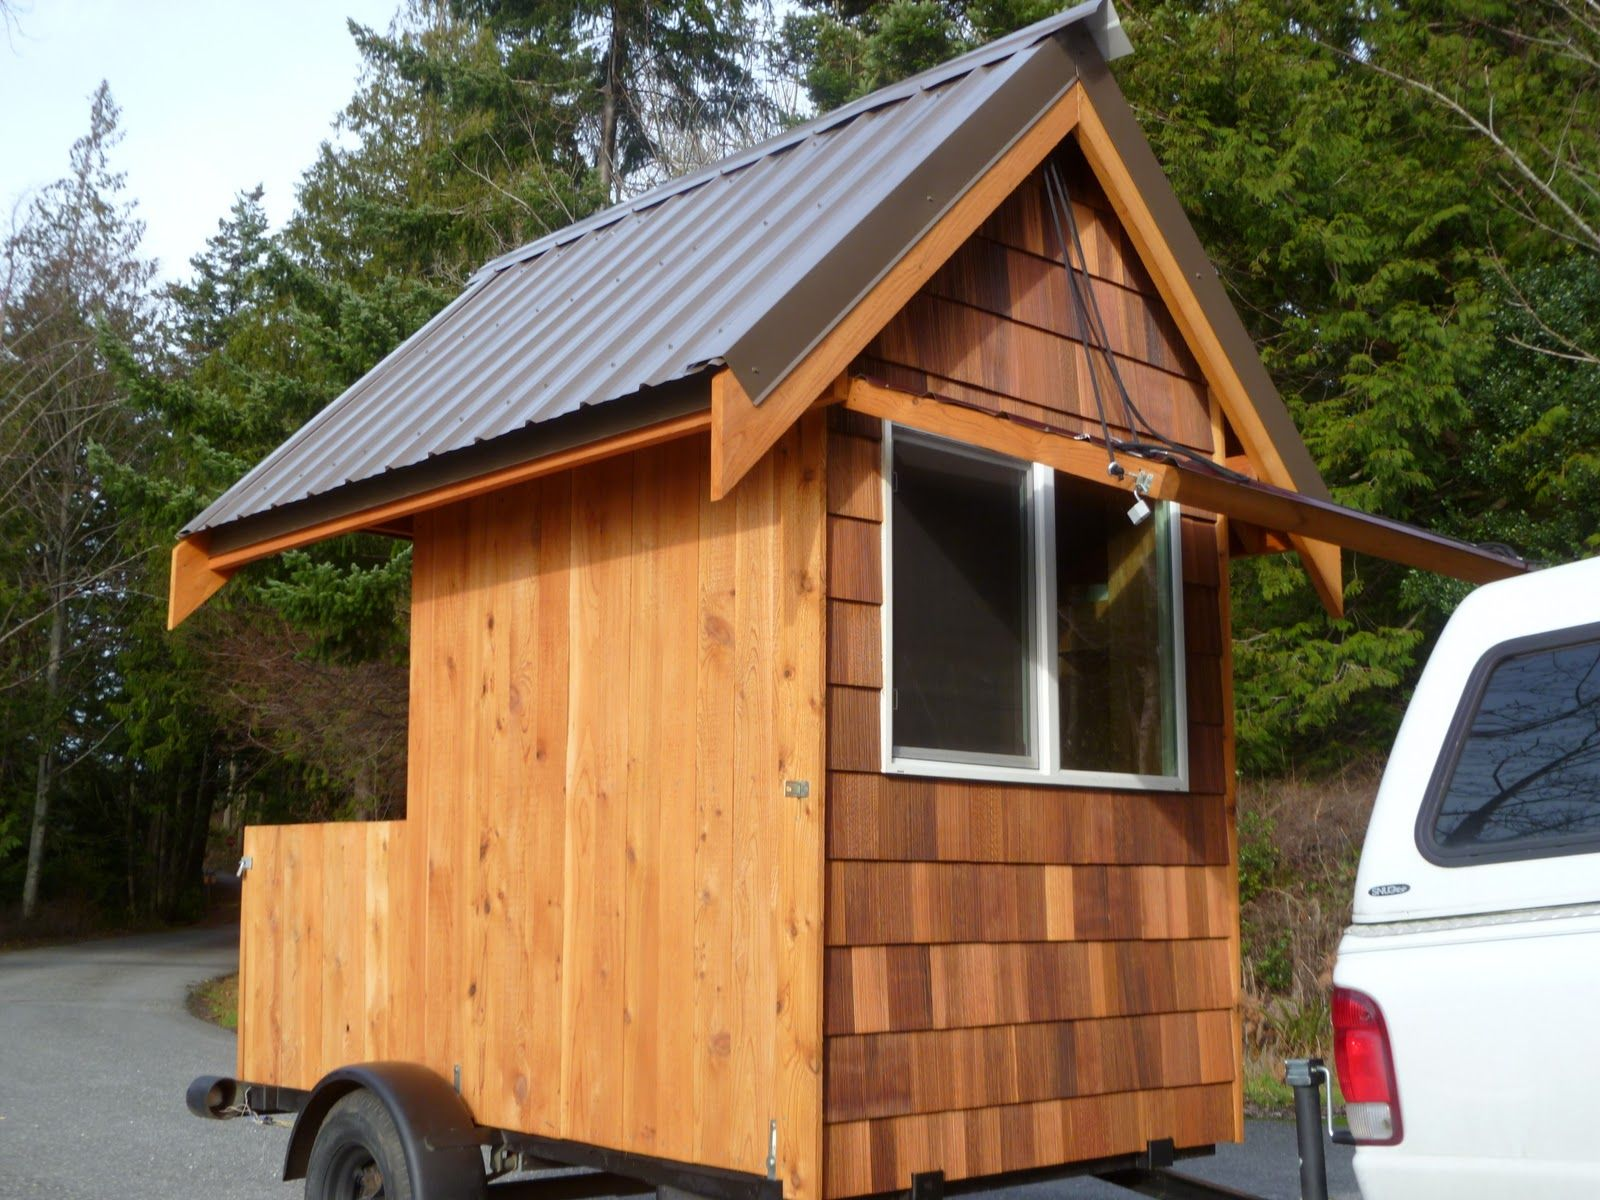 Eli 3 Tiny House Cabin On Wheels Home - begumbal